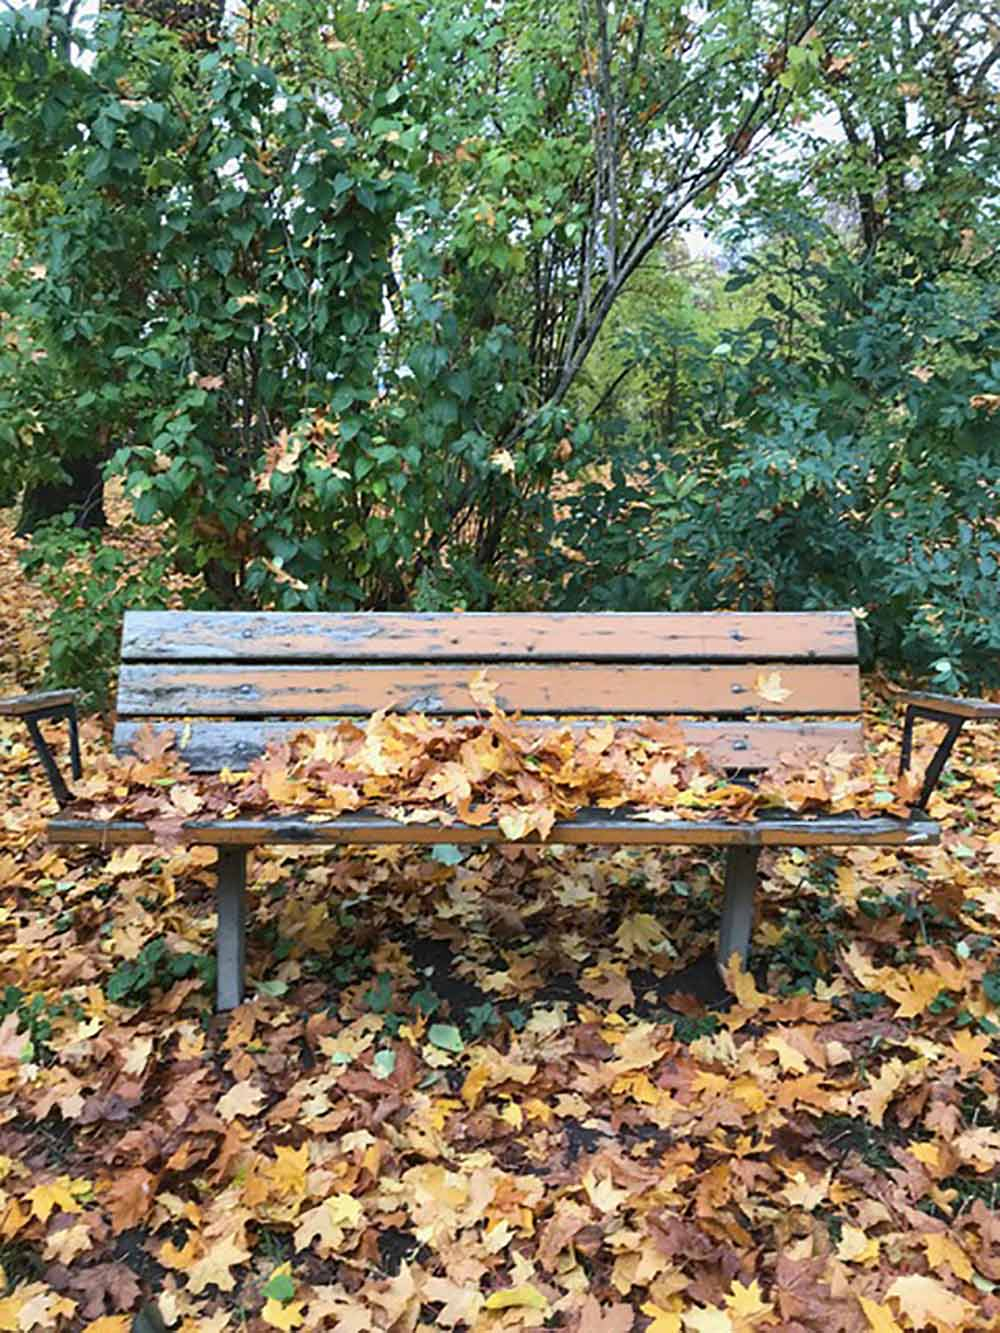 Park bench before removal due to park restauration. 2019. Thora Dahls park, Stockholm, Sweden. Photography by Mona Livholts.